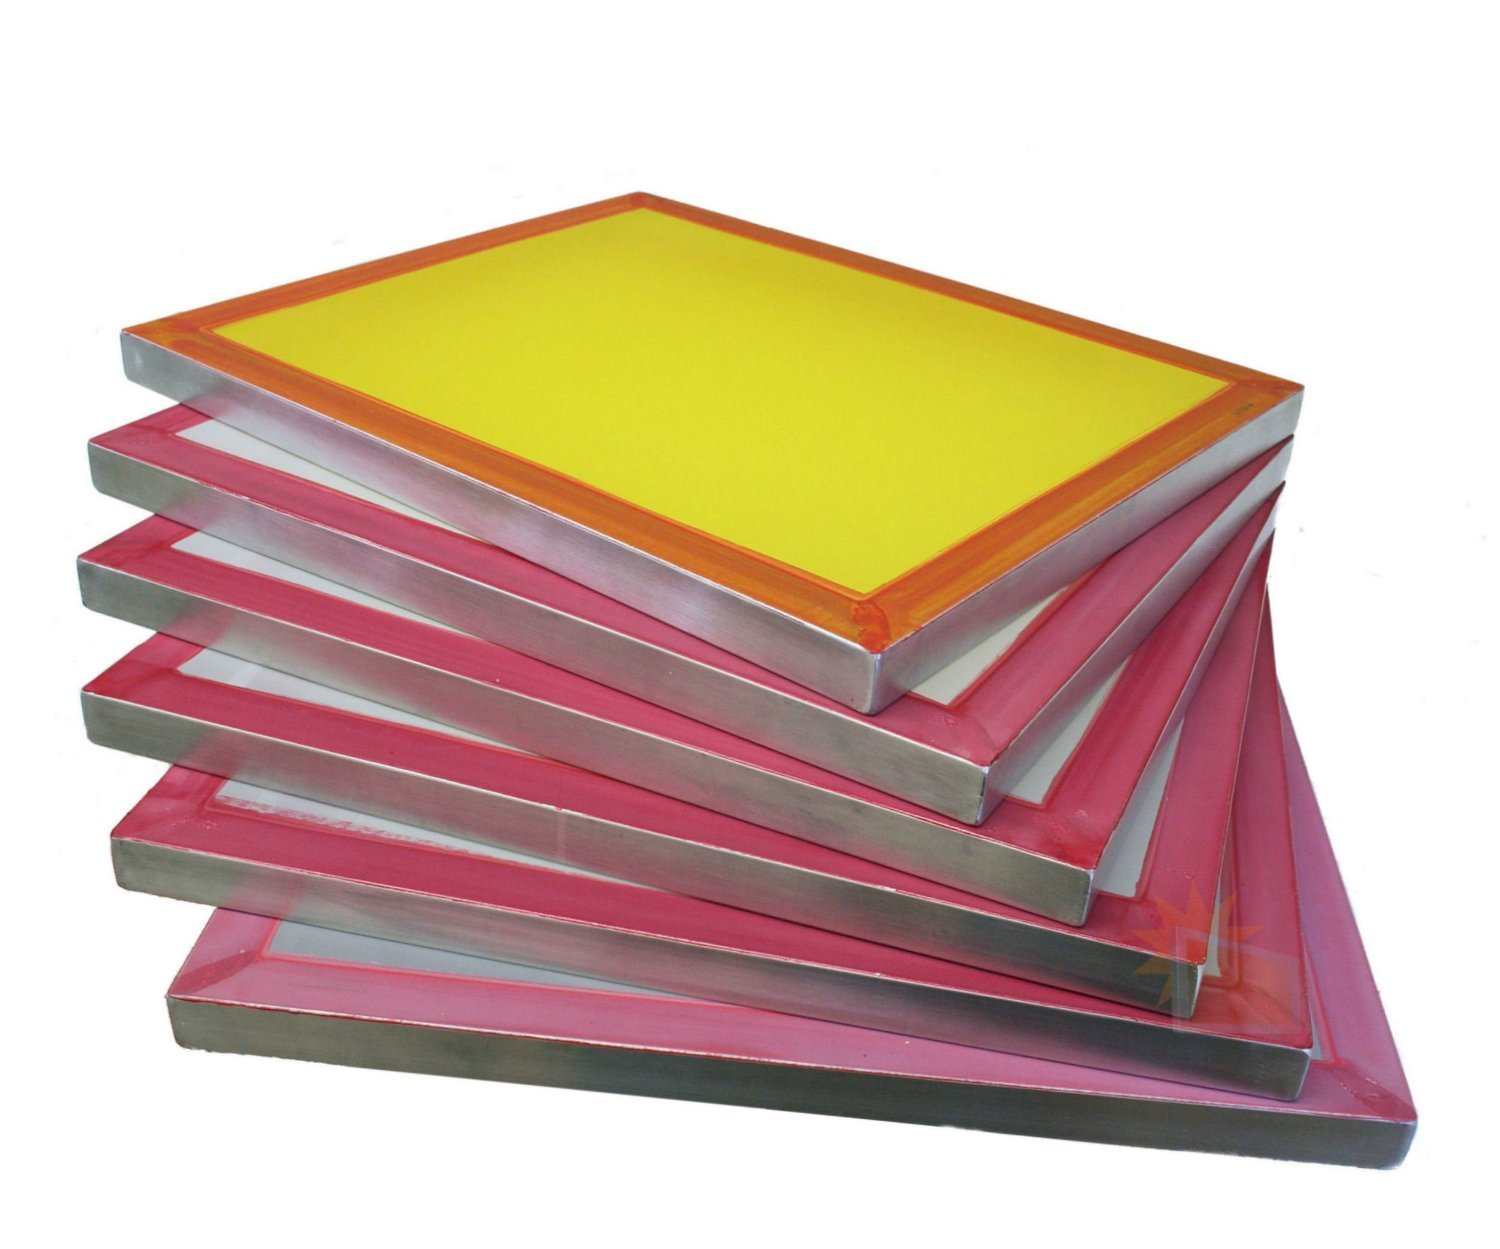 6-pack 18x20 Aluminum Screen Printing Frames w/ 230 tpi Yellow Mesh Pre-stretched MSJ Screens AL1820-230Y6PK